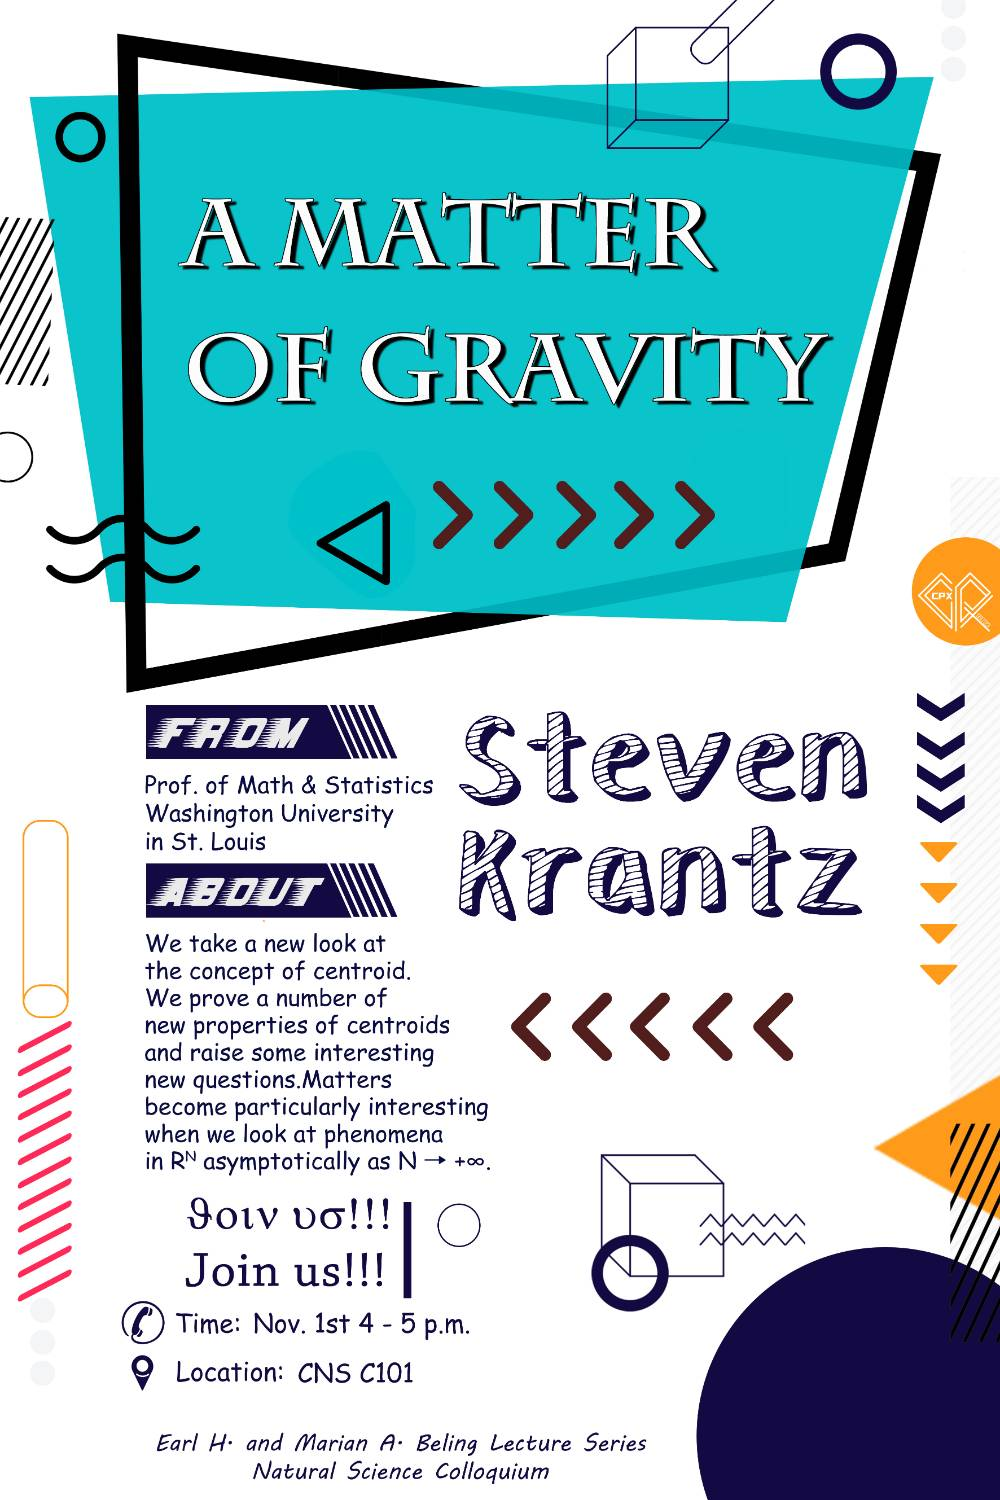 A Matter of Gravity lecture on Nov 1 4-5 PM